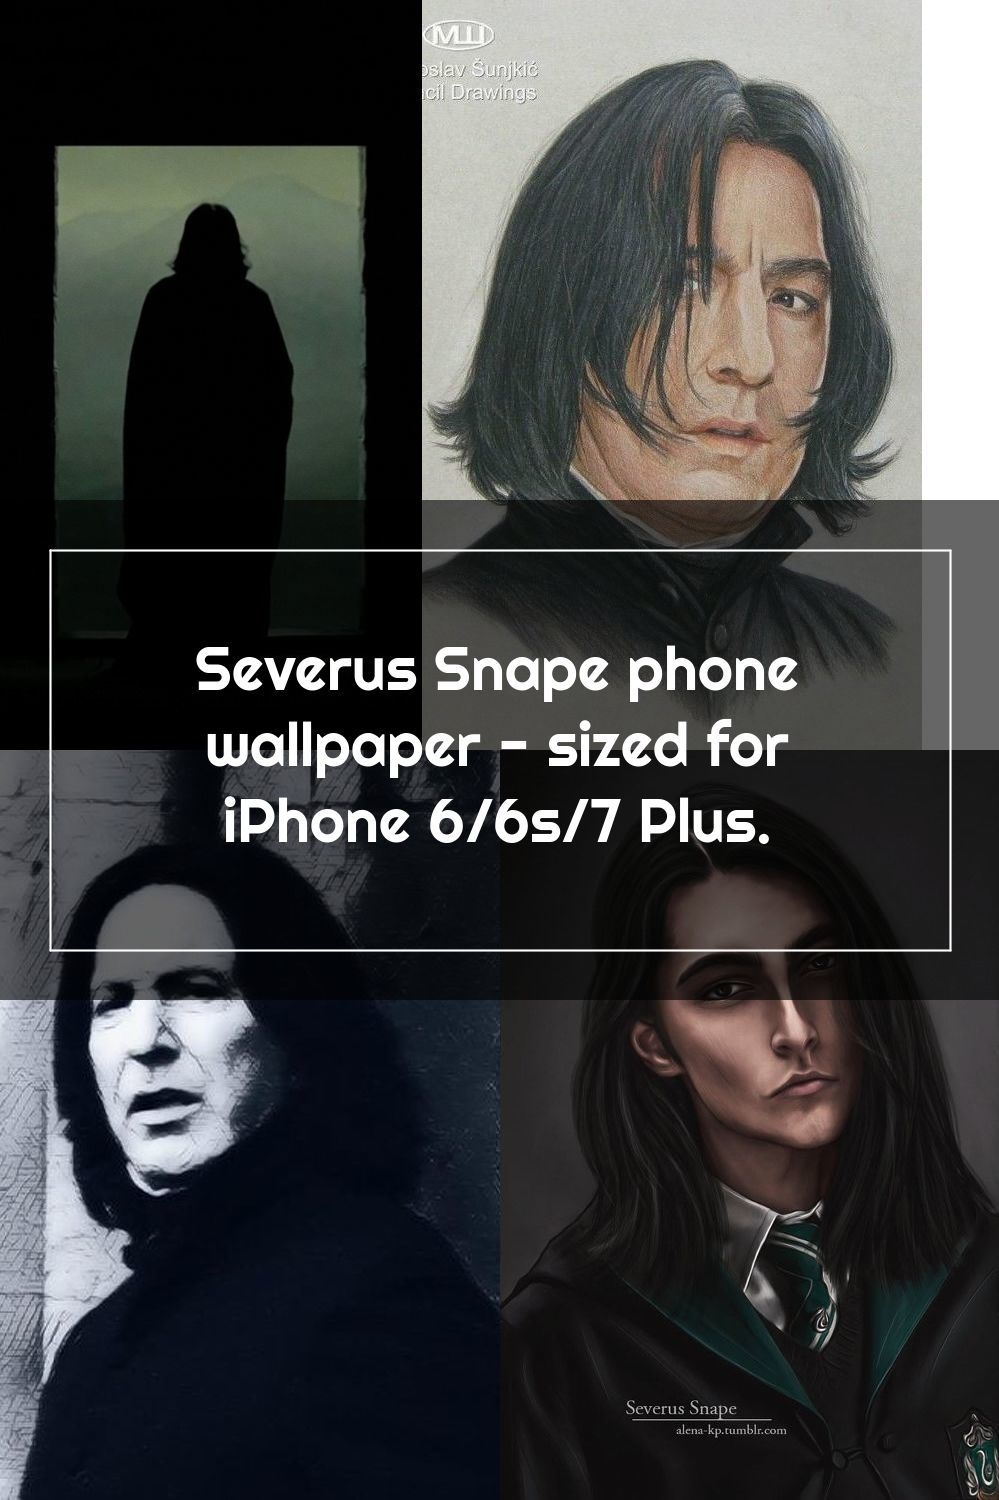 Severus Snape phone wallpaper sized for iPhone 6/6s/7